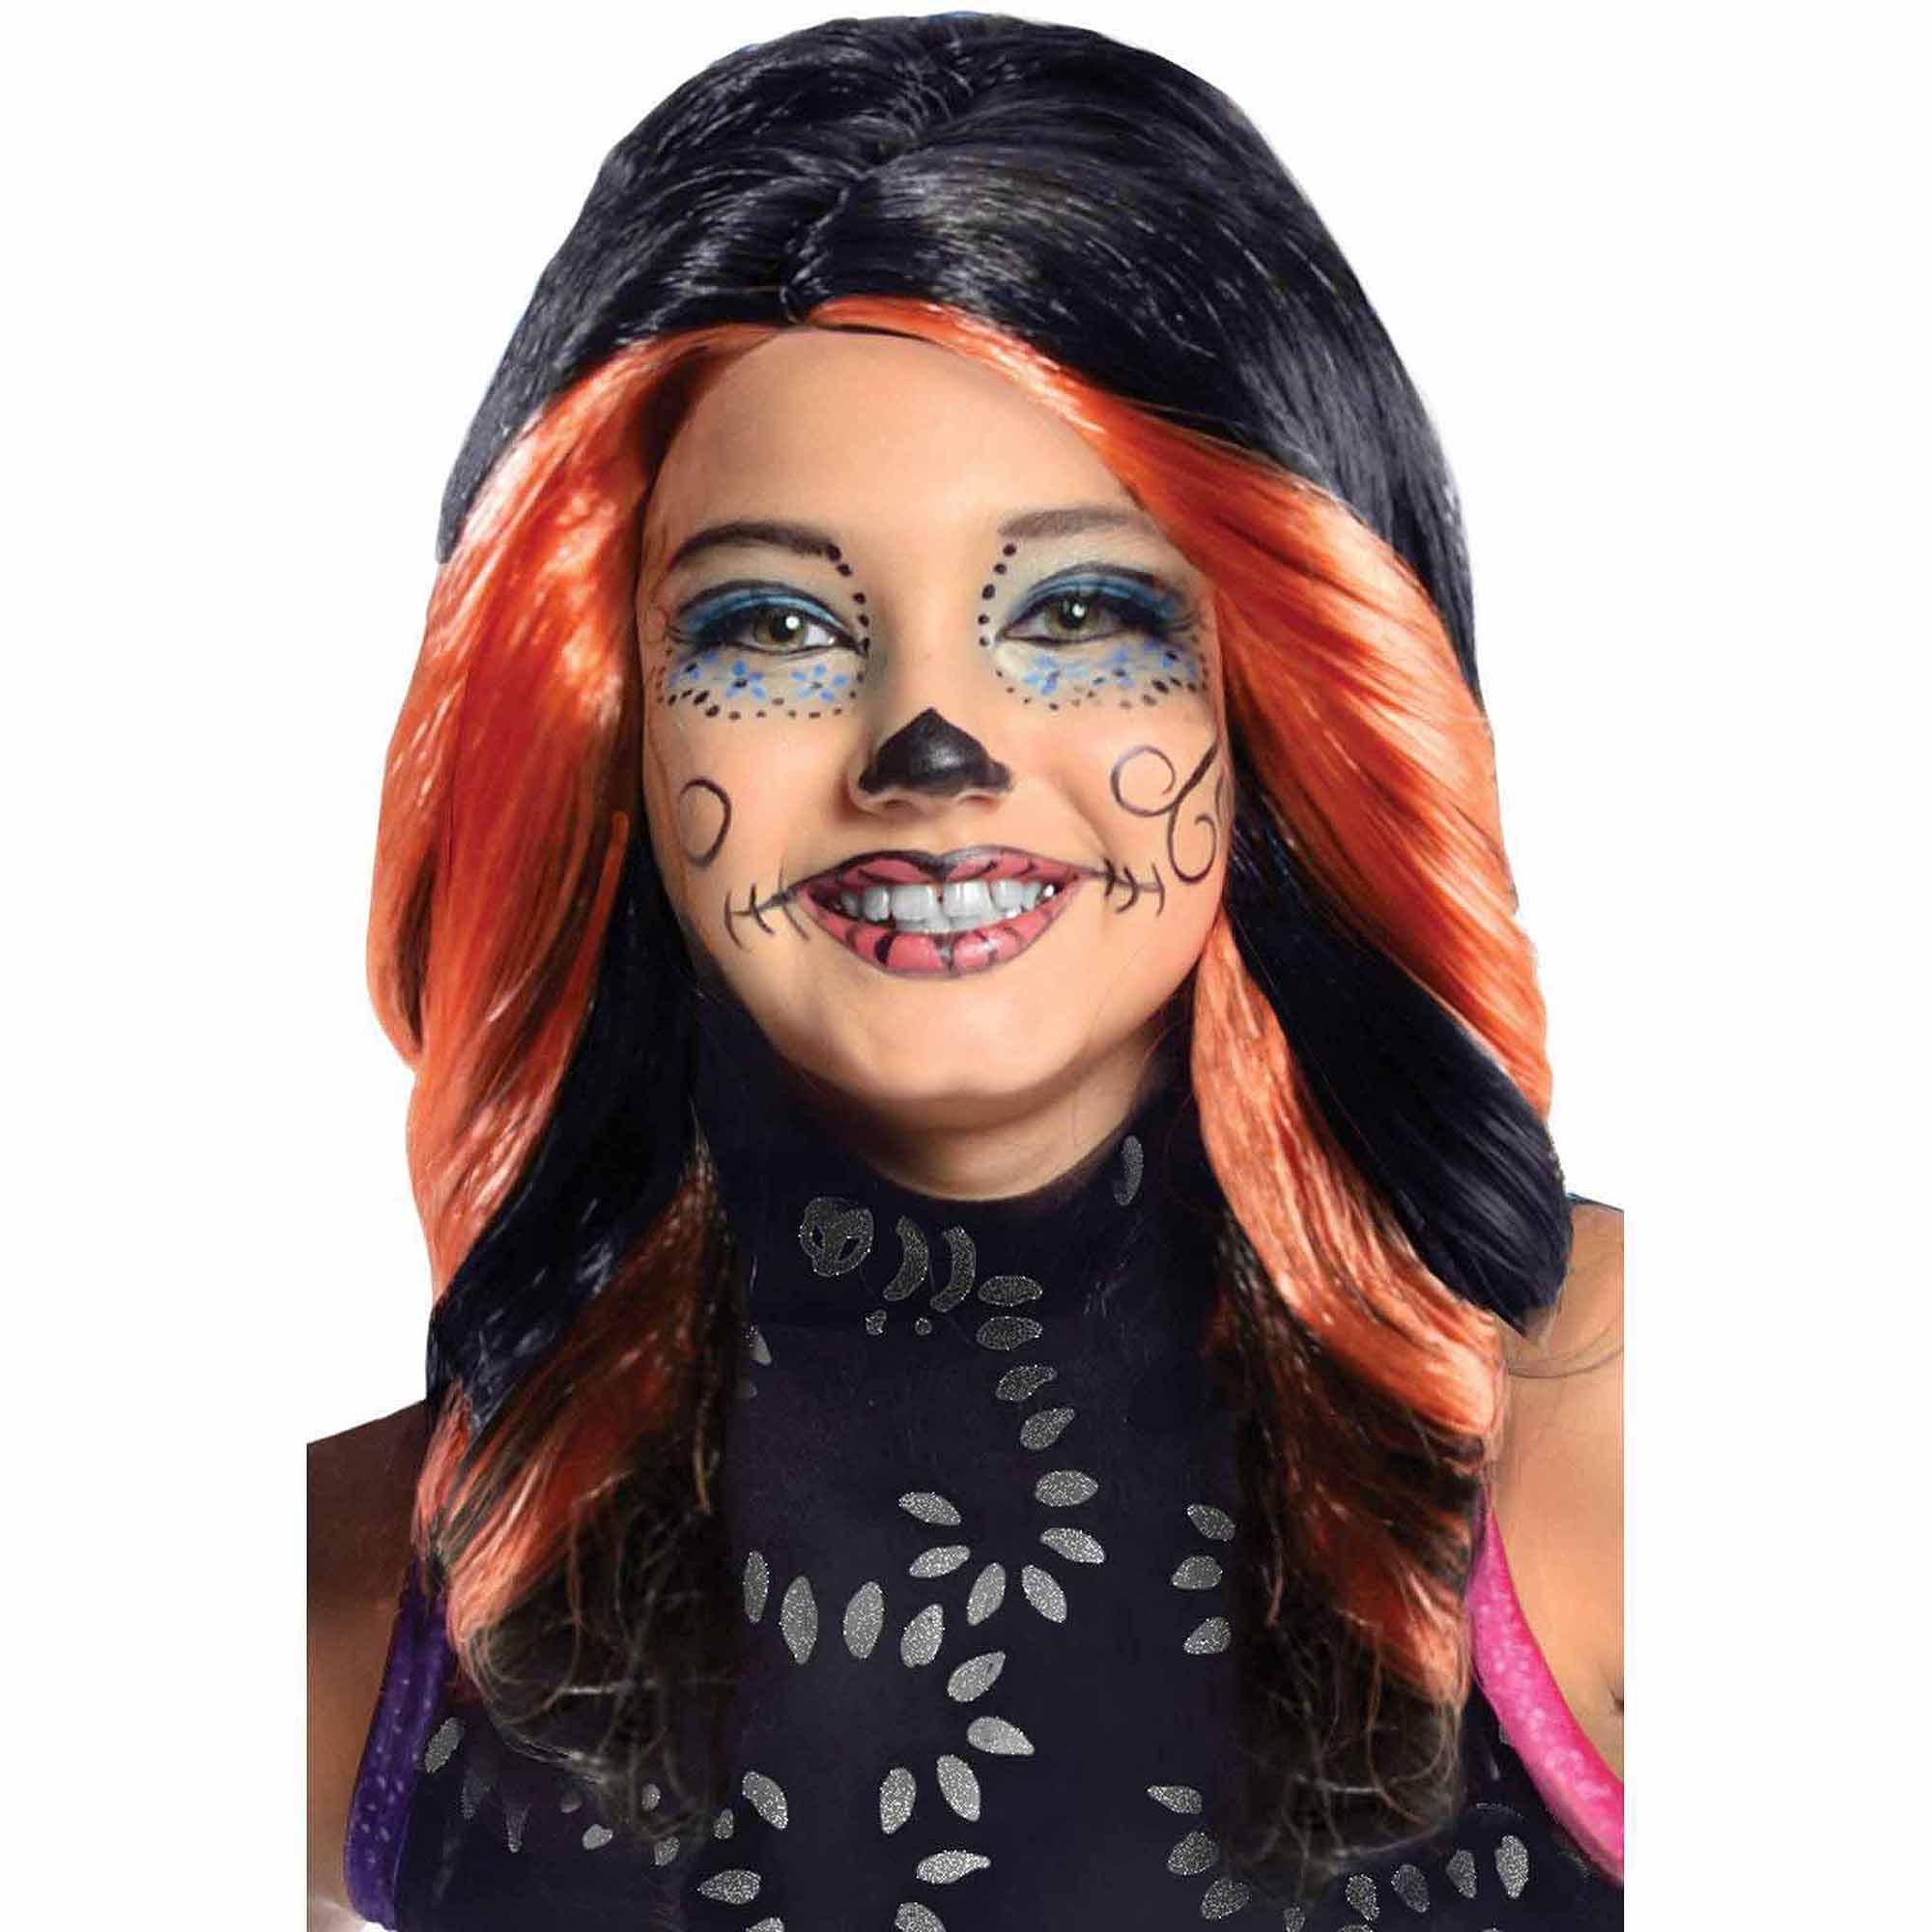 Monster High Skelita Calaveras Wig Child Halloween Costume Accessory